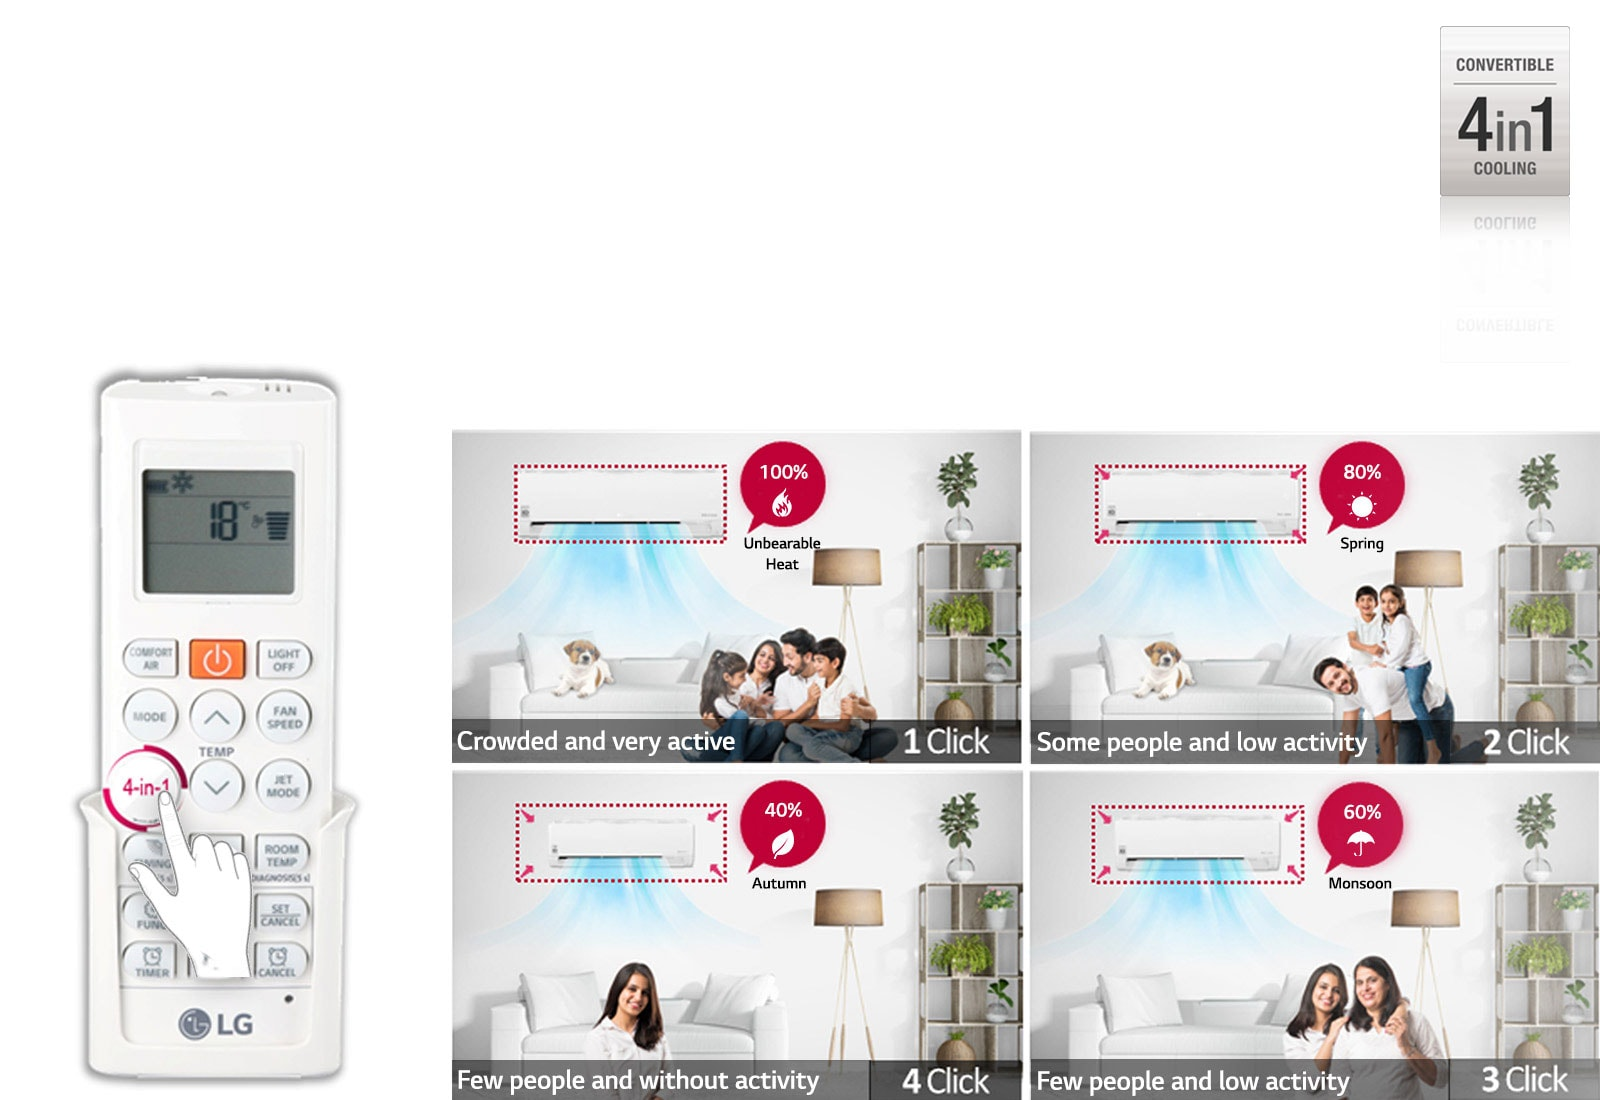 LG LS-H12VNXD 4-in-1 Convertible Cooling